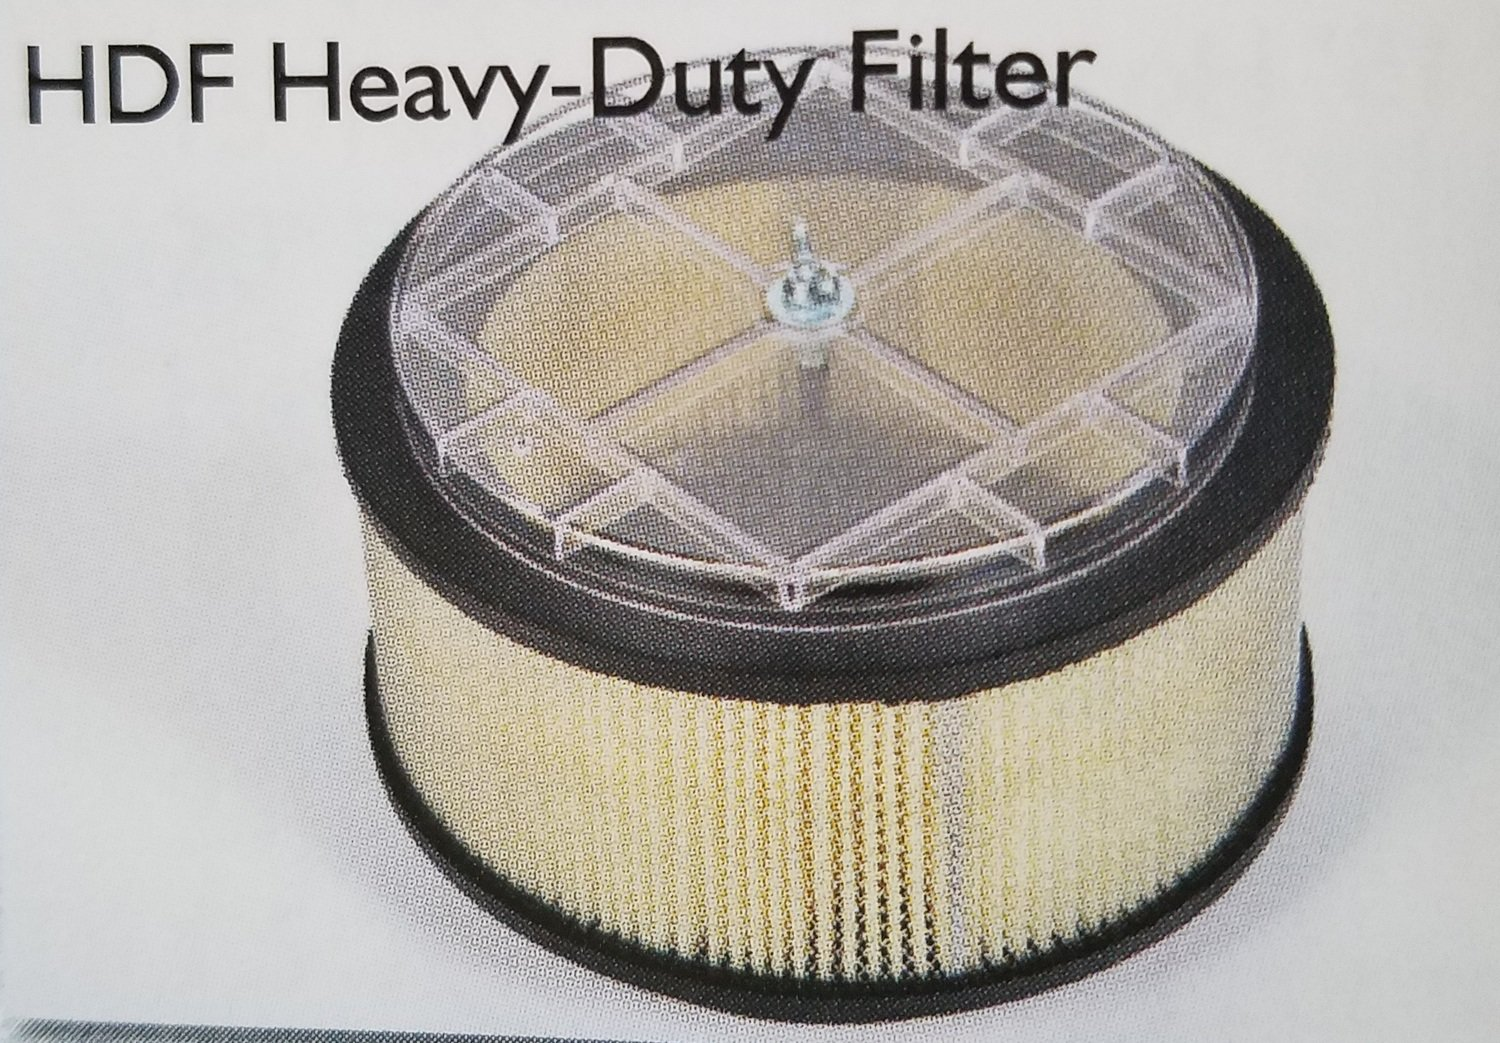 K9 DRYER Filter - Heavy Duty